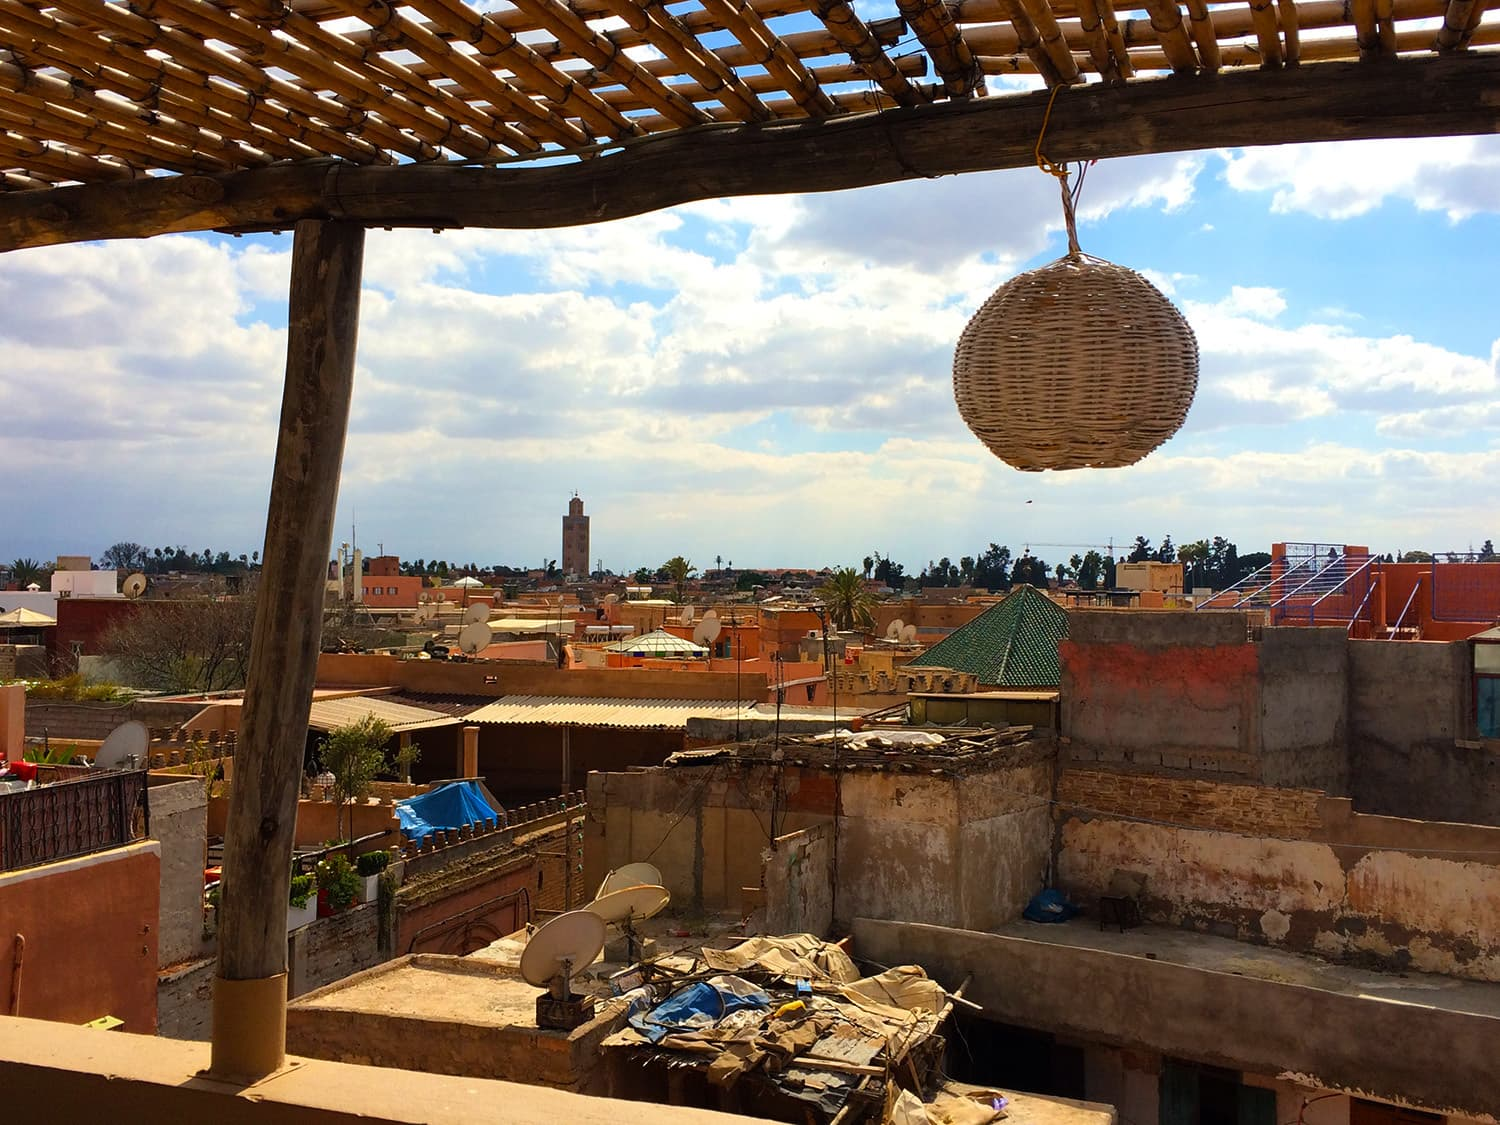 View of the medina from the cafe's rooftop.